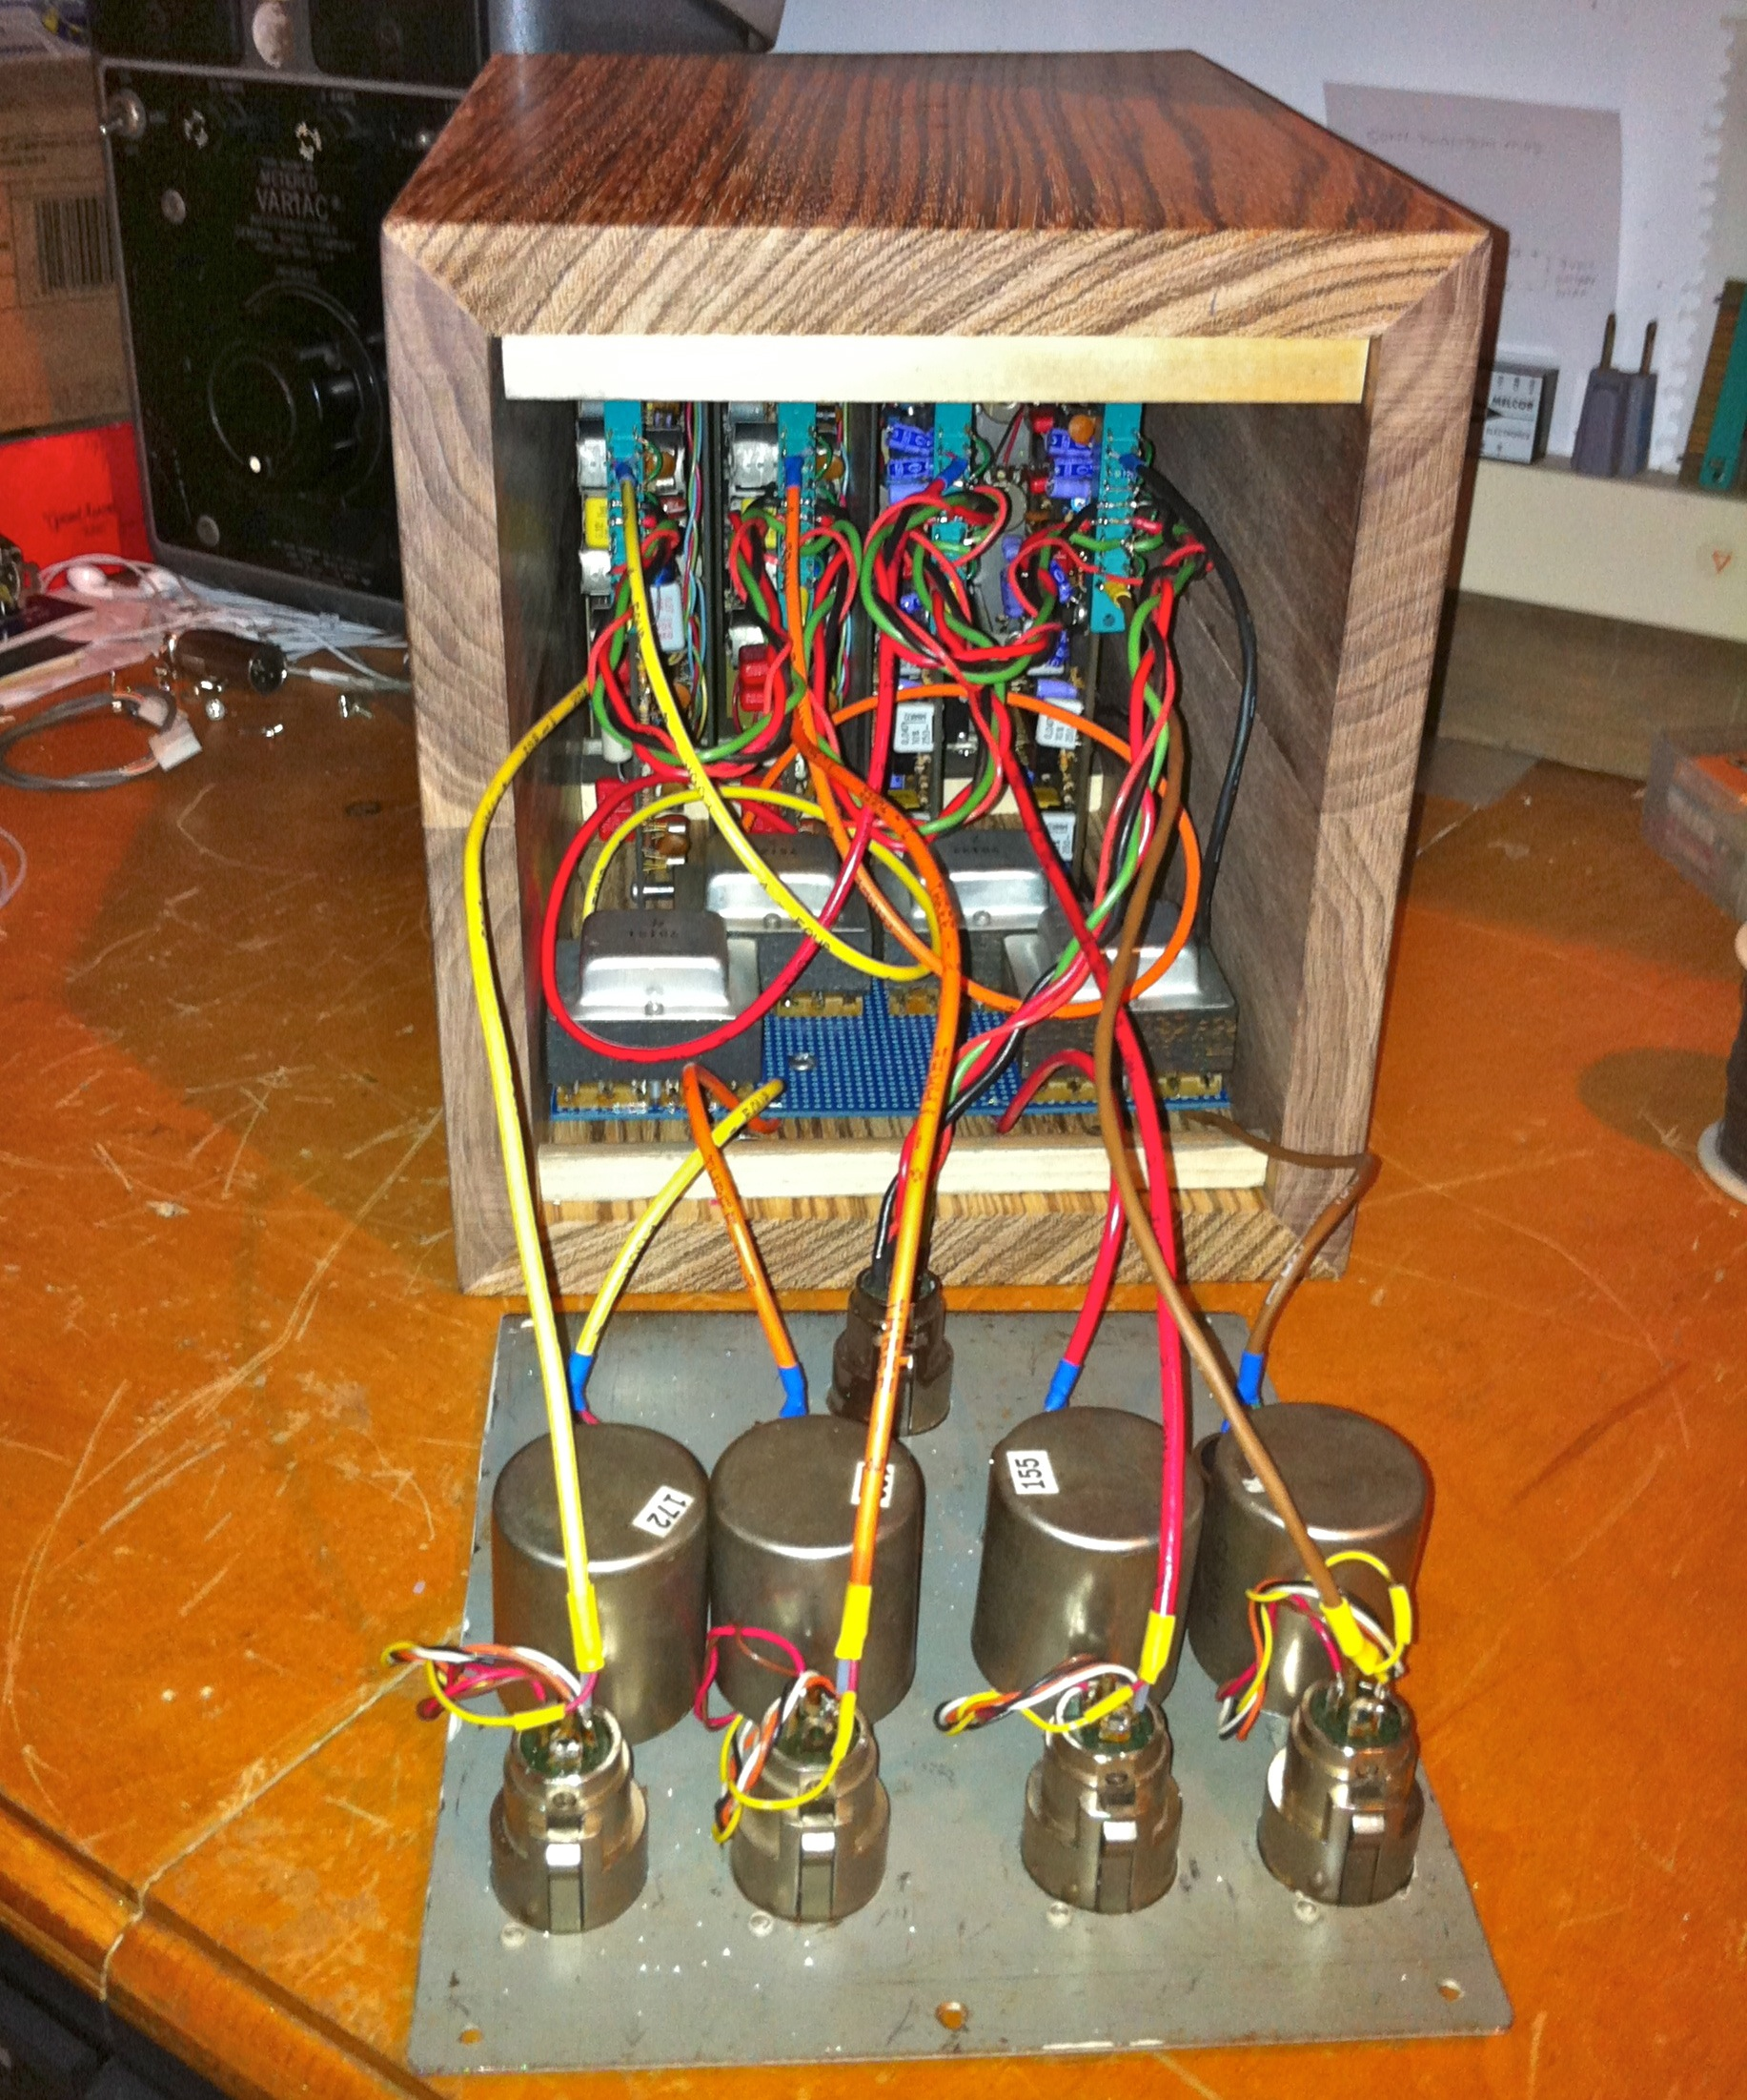 sphere wiring equalizer analog audio repair graphic equalizer wiring at n-0.co